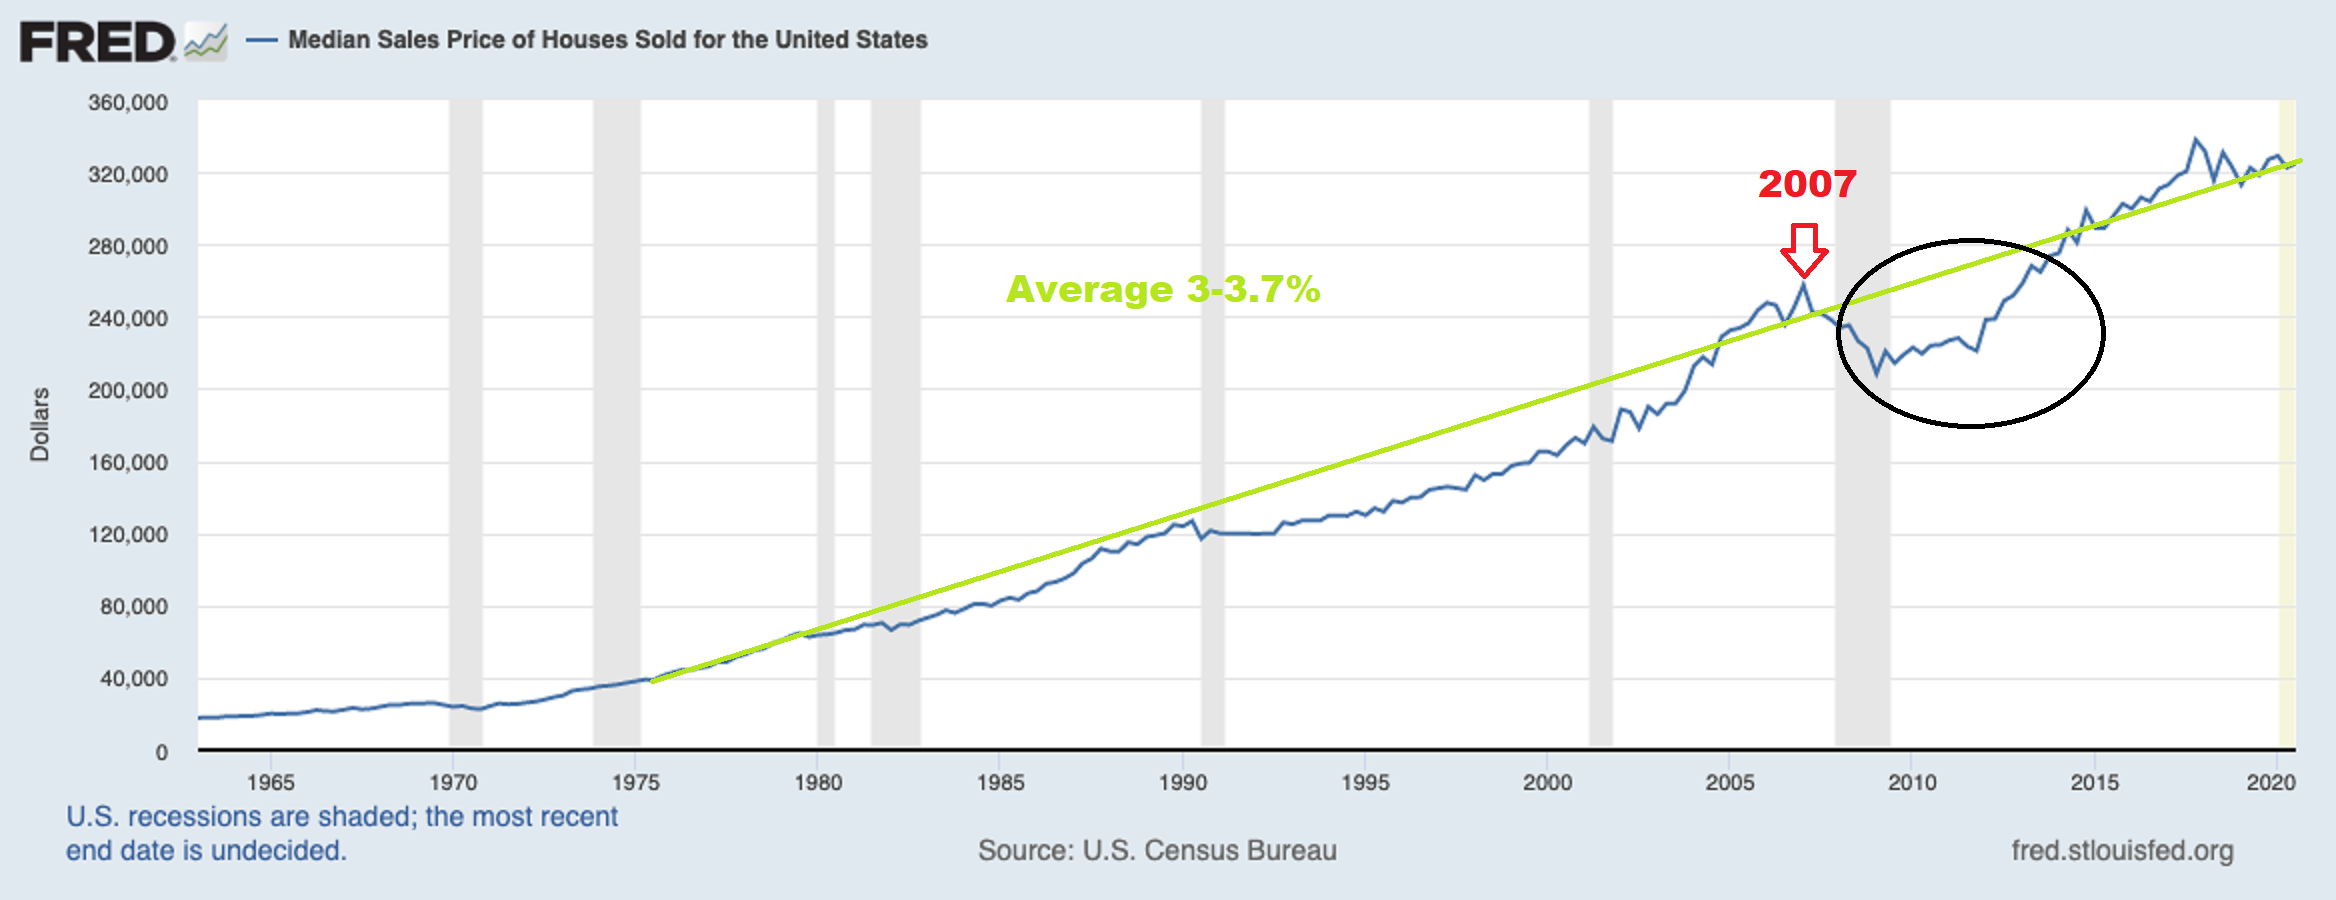 Home growth average is strong with The Drew Team Arizona